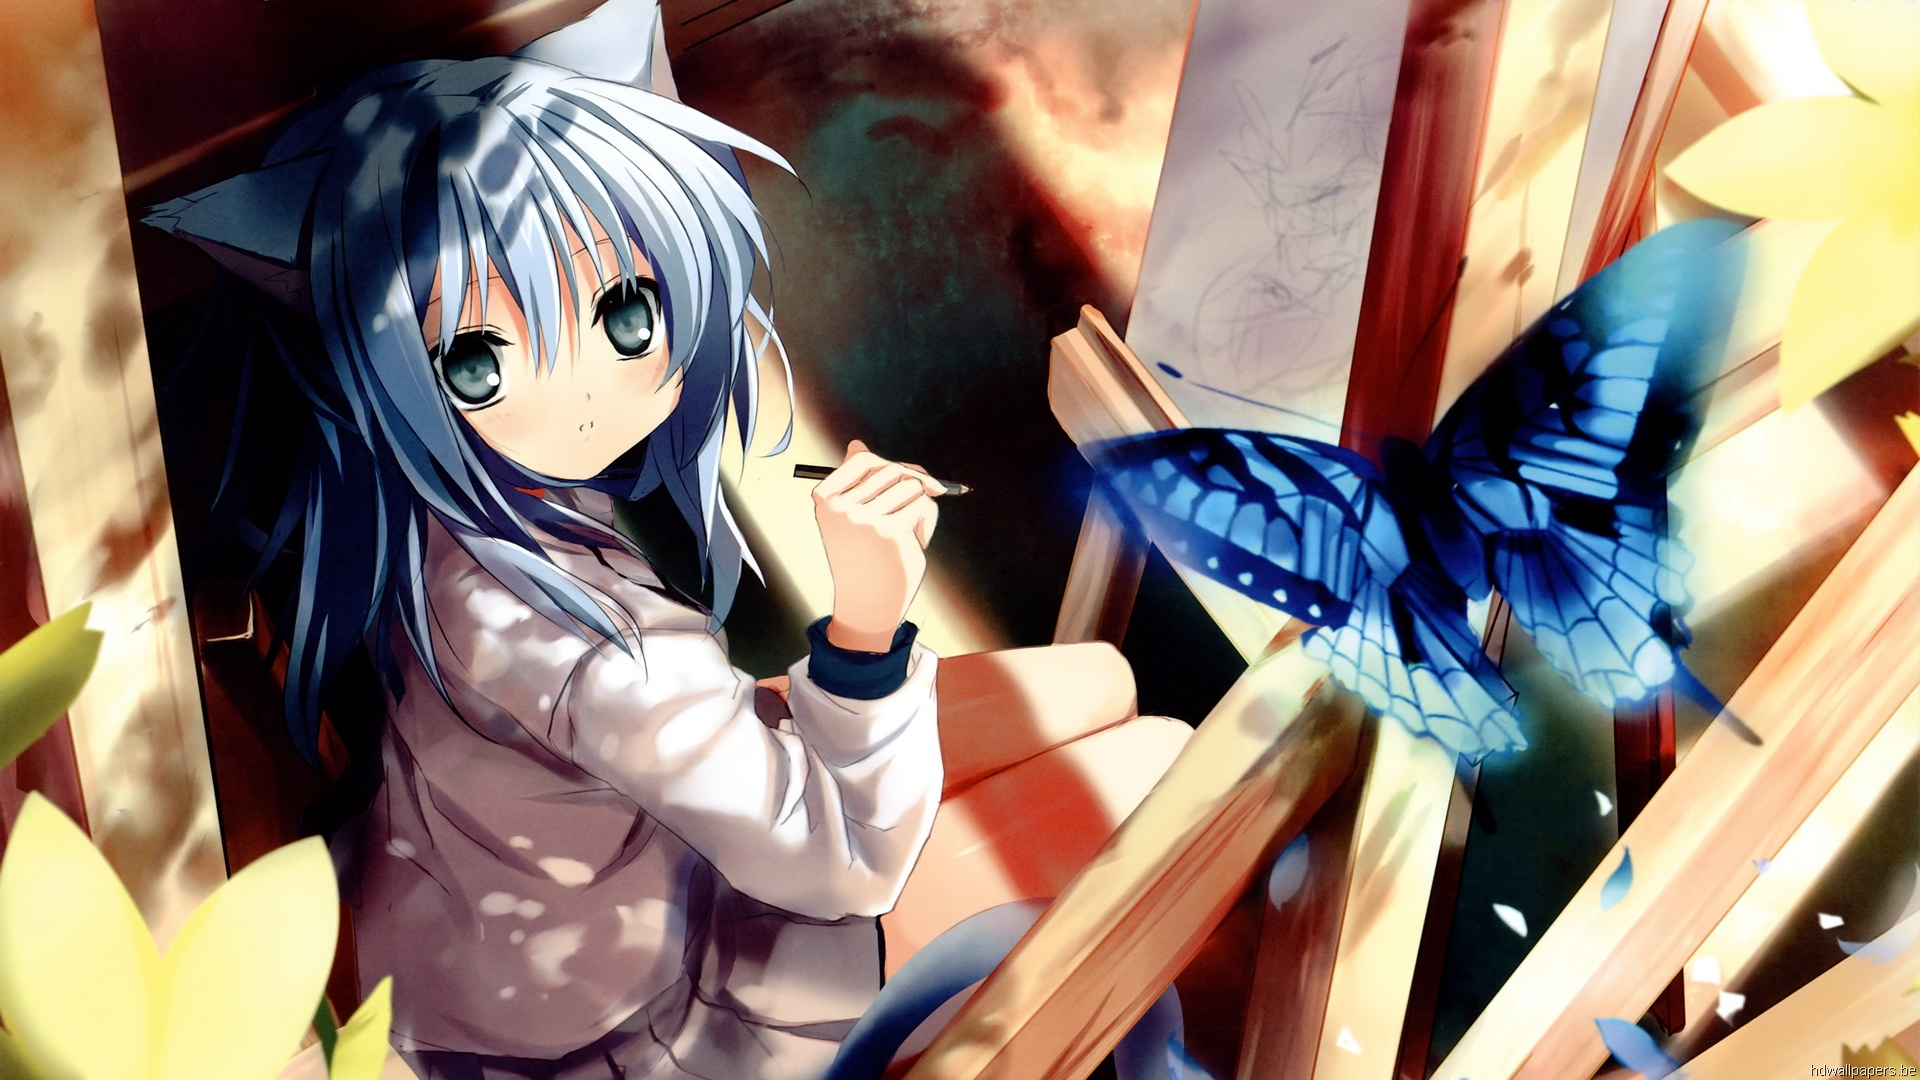 Cute HD Anime Wallpapers   ForumunuzCom 1920x1080